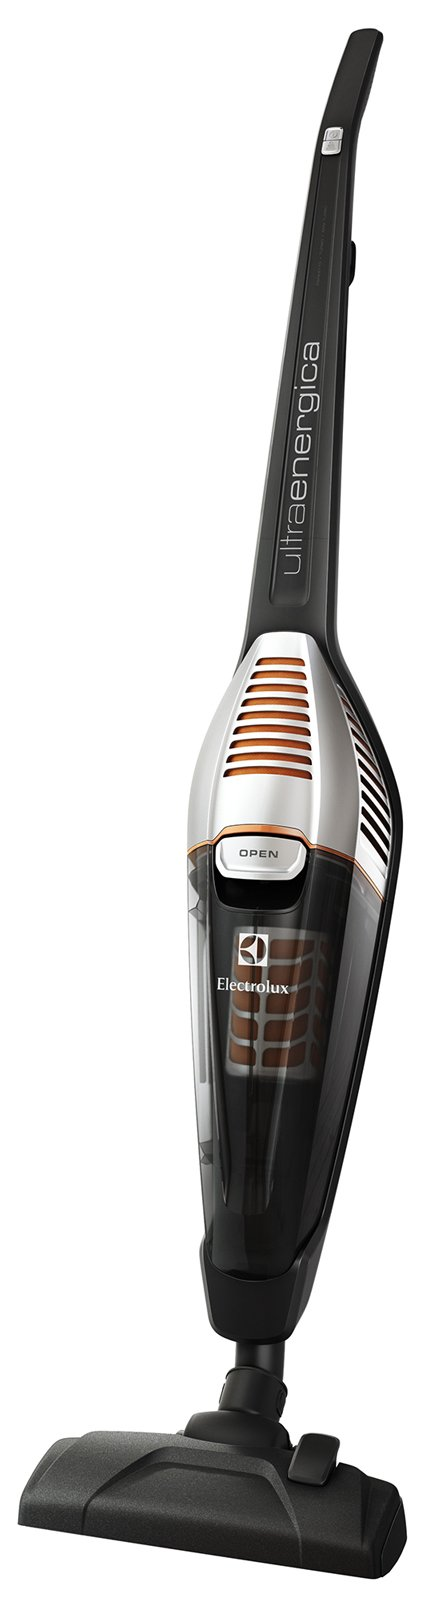 2electrolux-ZS345-scope-eco